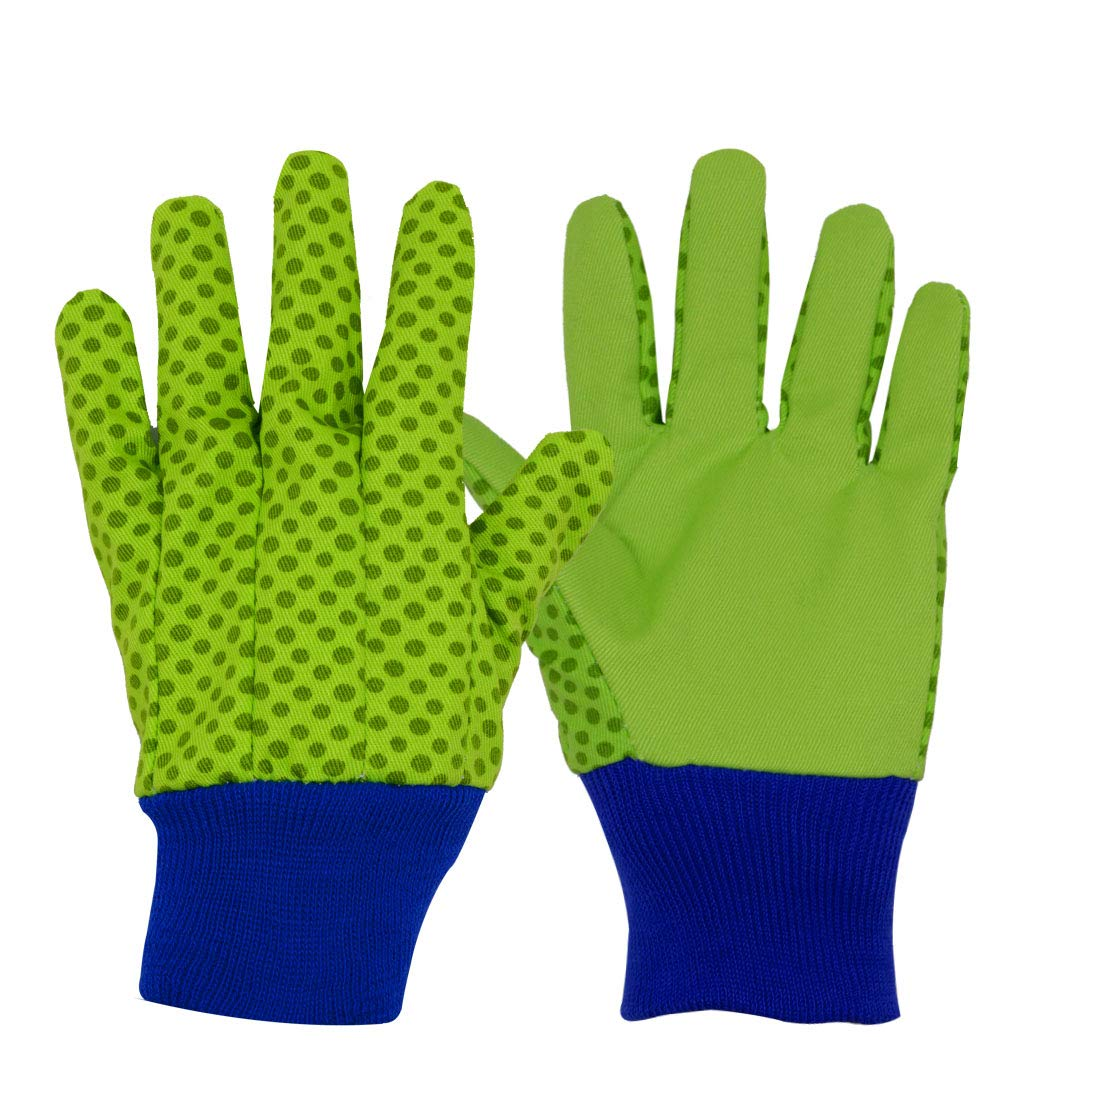 3 Pairs Soft & Comfortable Design for Kids Gardening Gloves,Yard Garden Work Gloves (Small, Green Dots)